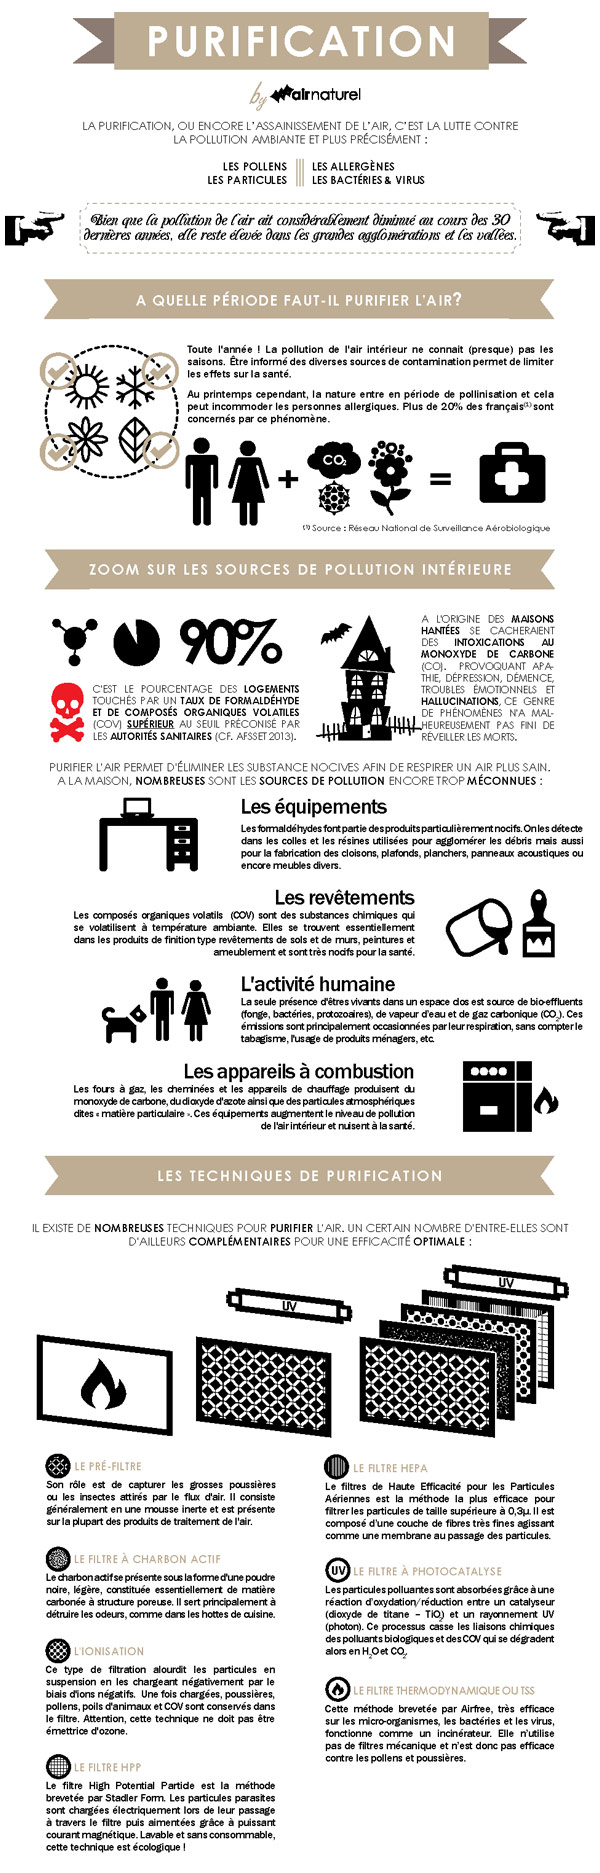 Guide ultime de la purification de l'air - Comment choisir son purificateur d'air (infographie)